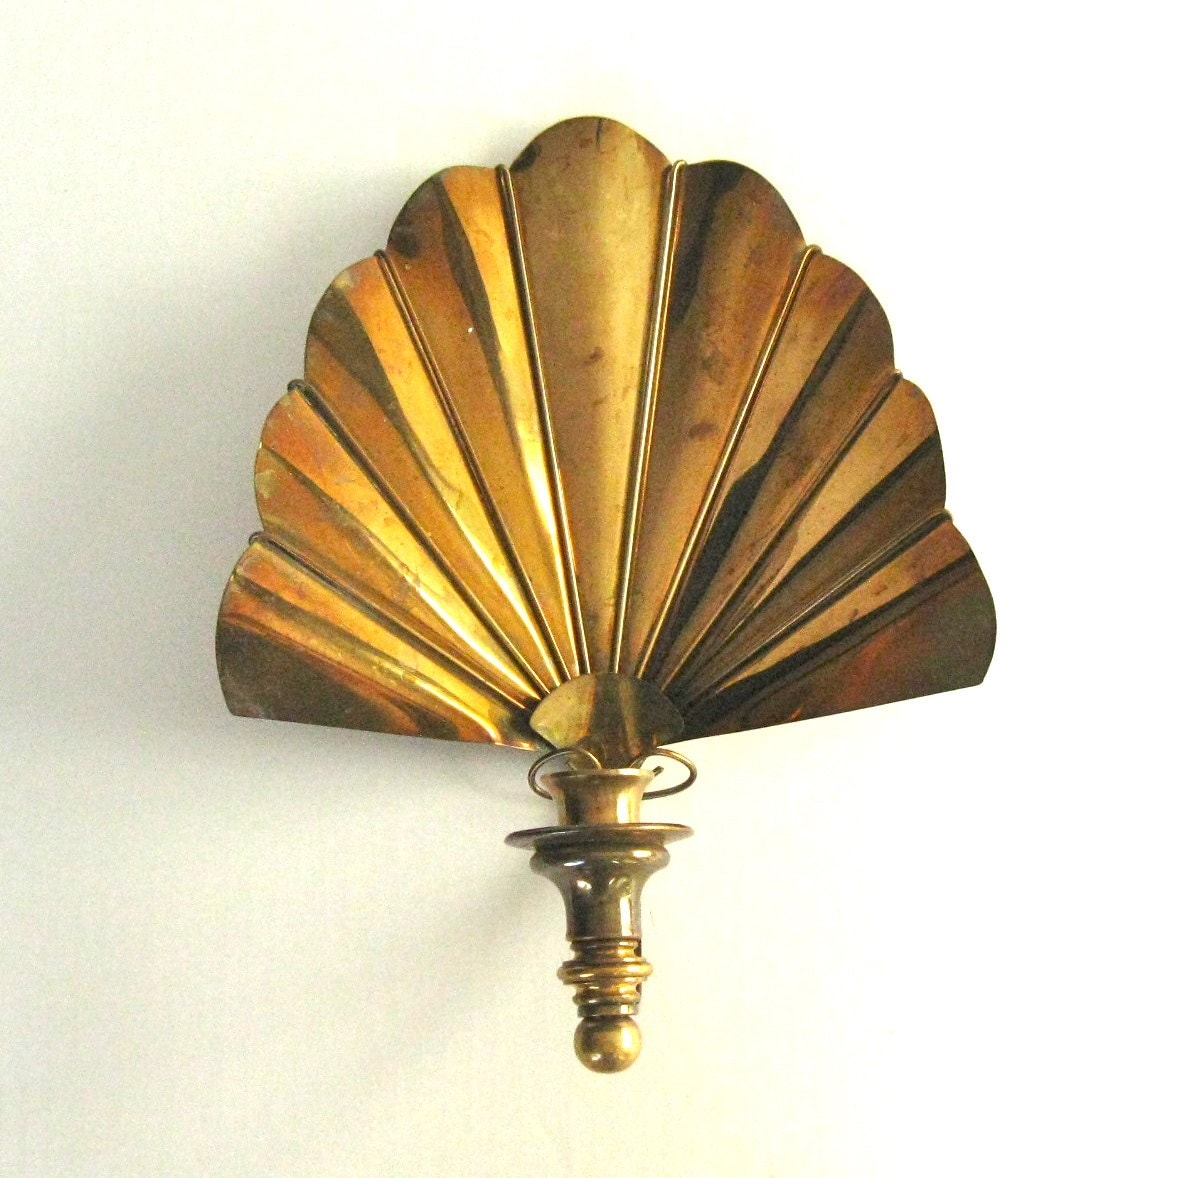 Vintage brass candle sconce hollywood regency wall by stephieD